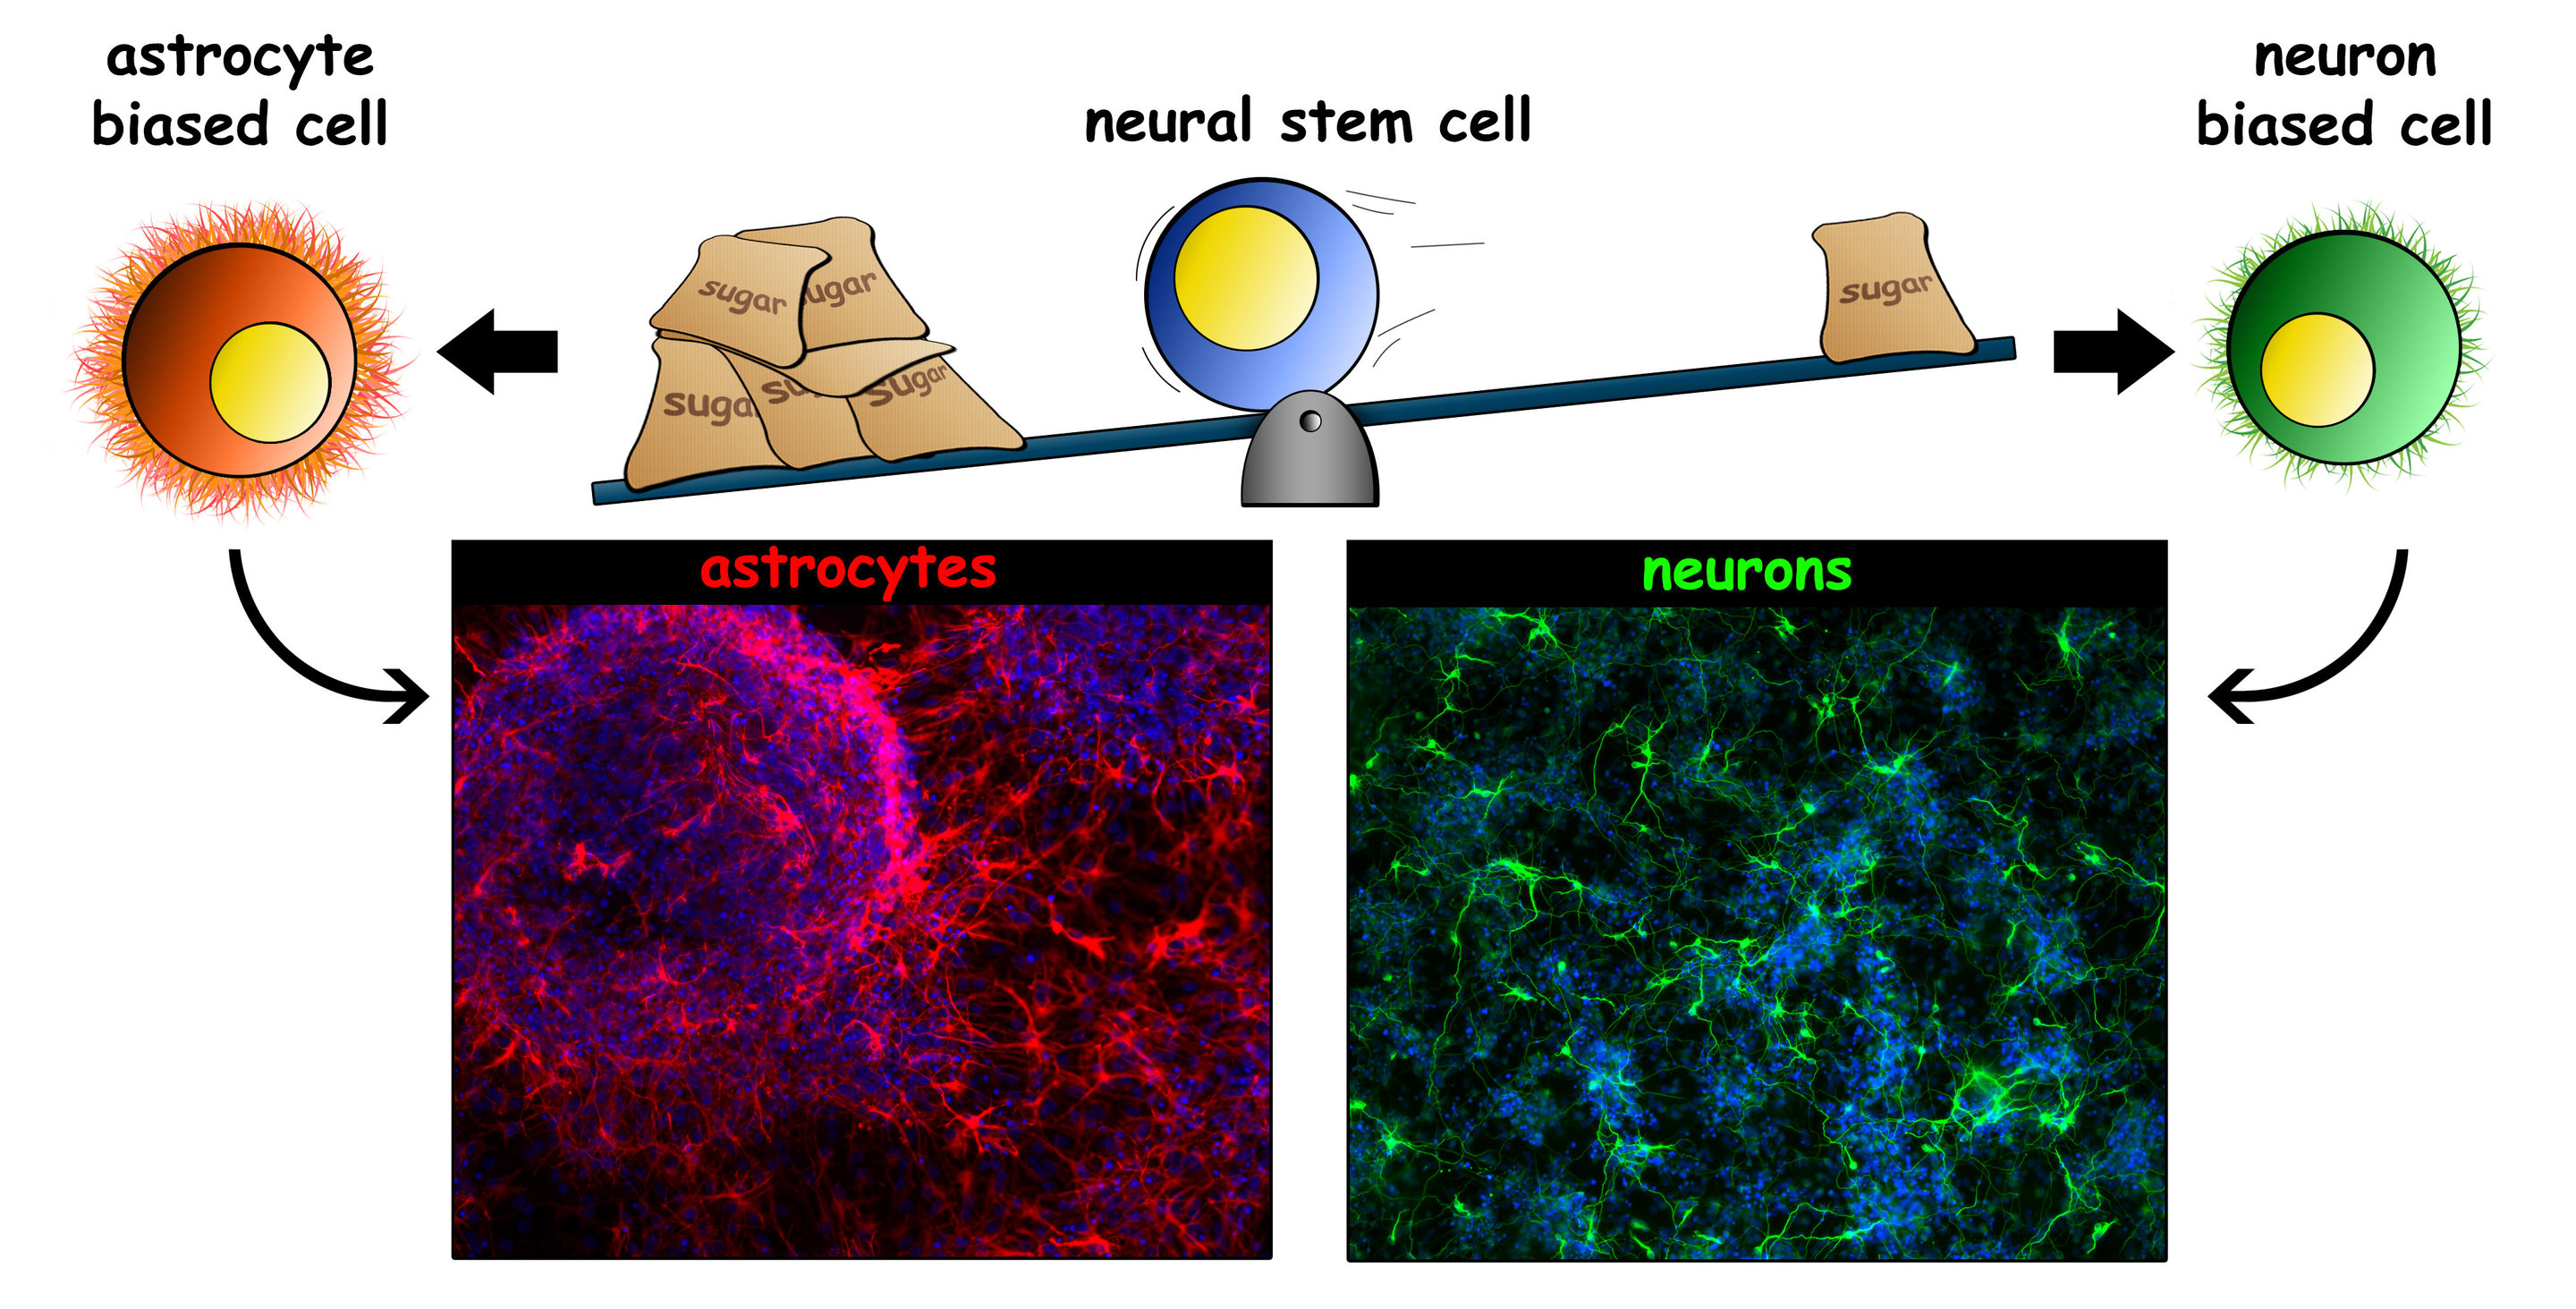 Research identifies properties of stem cells that determine cell fate